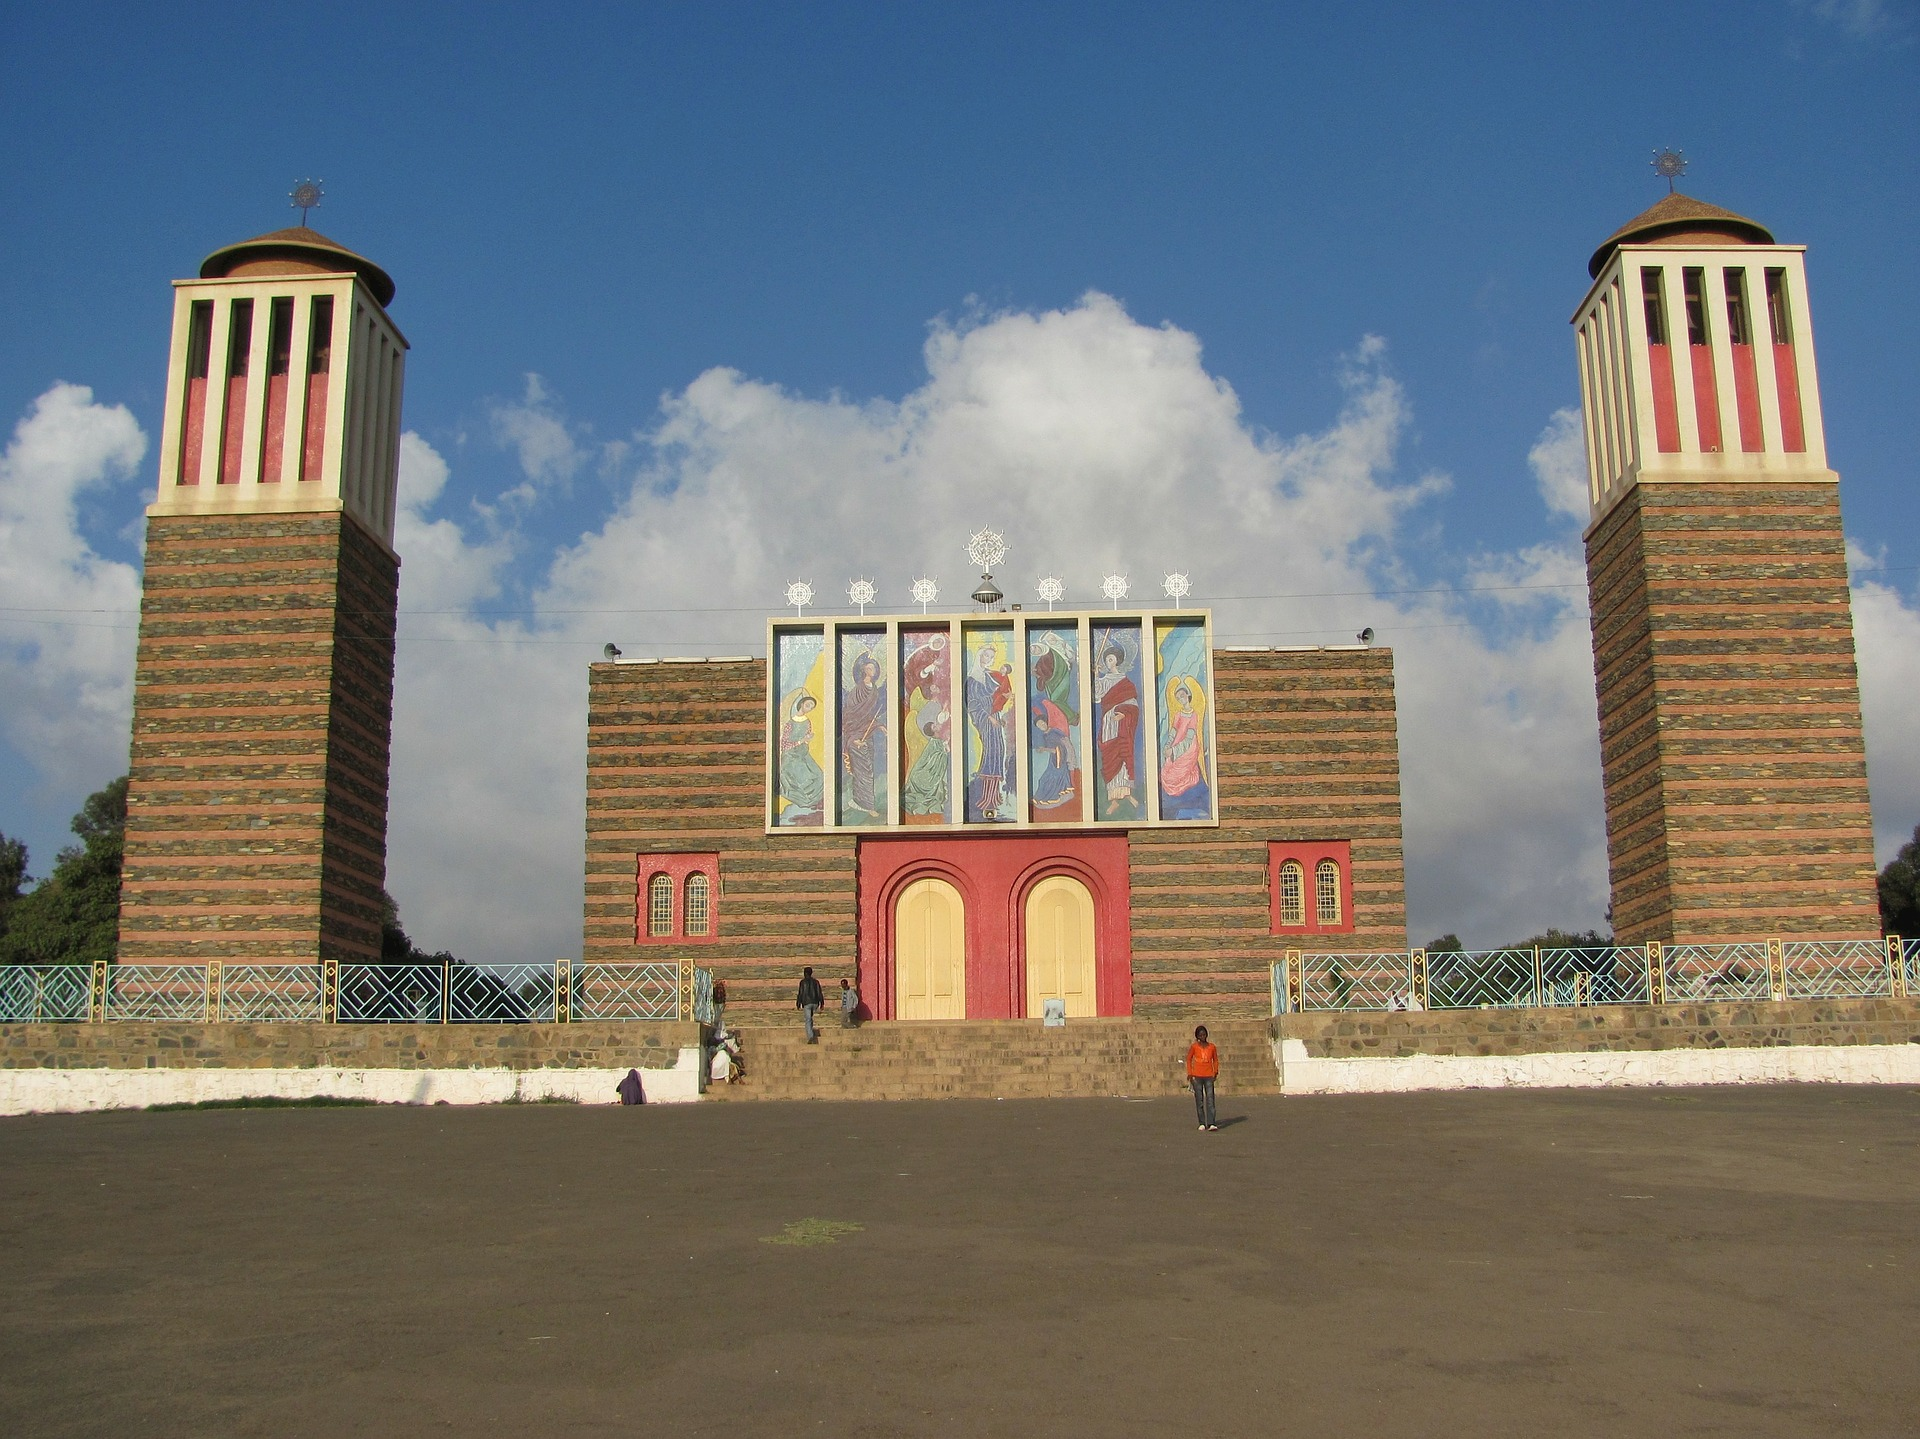 70 Eritrean Christians released from prison